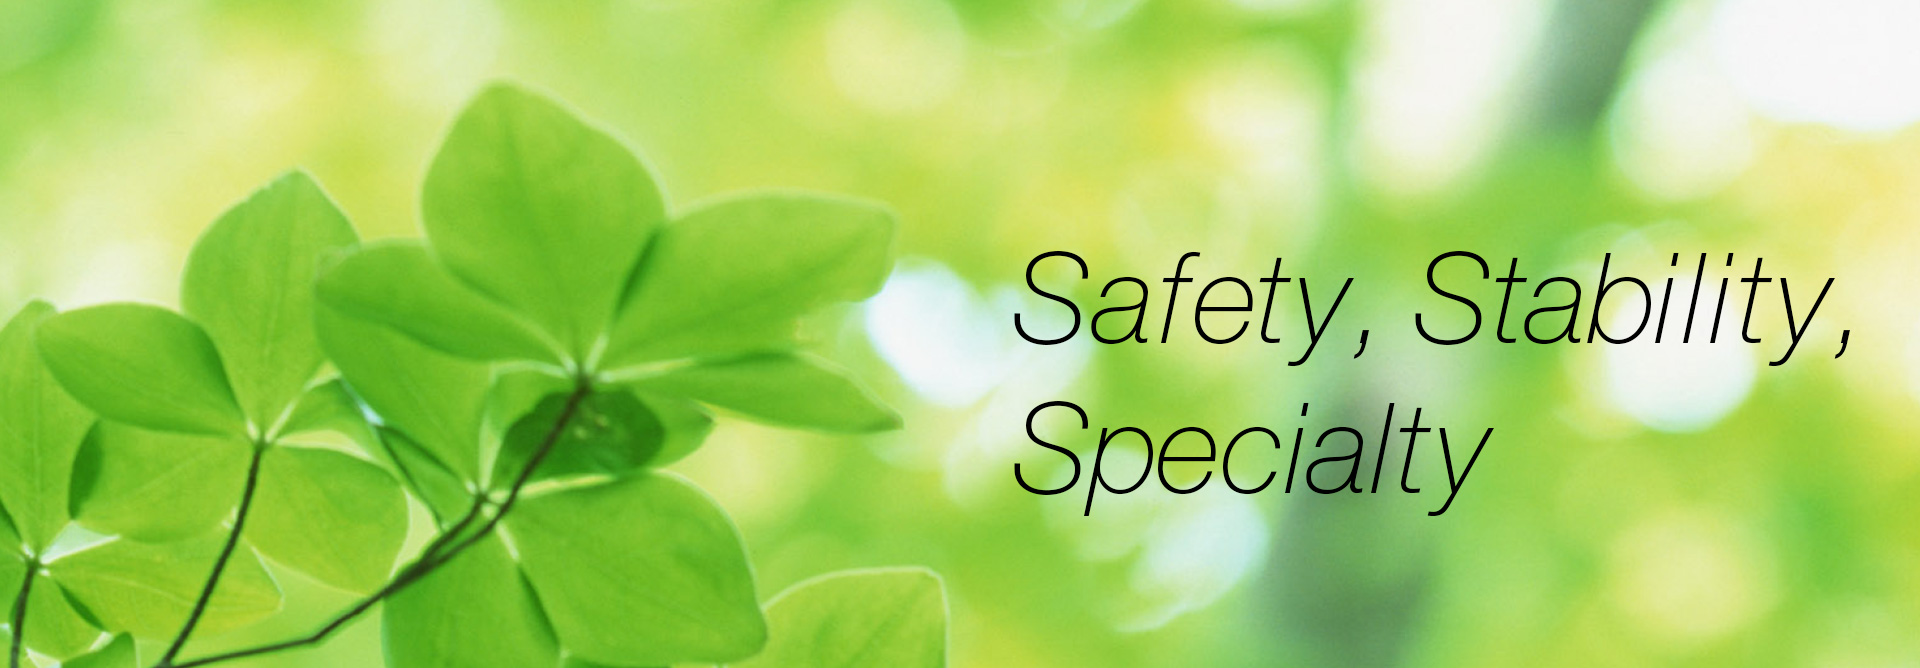 Safety, Stability, Specialty